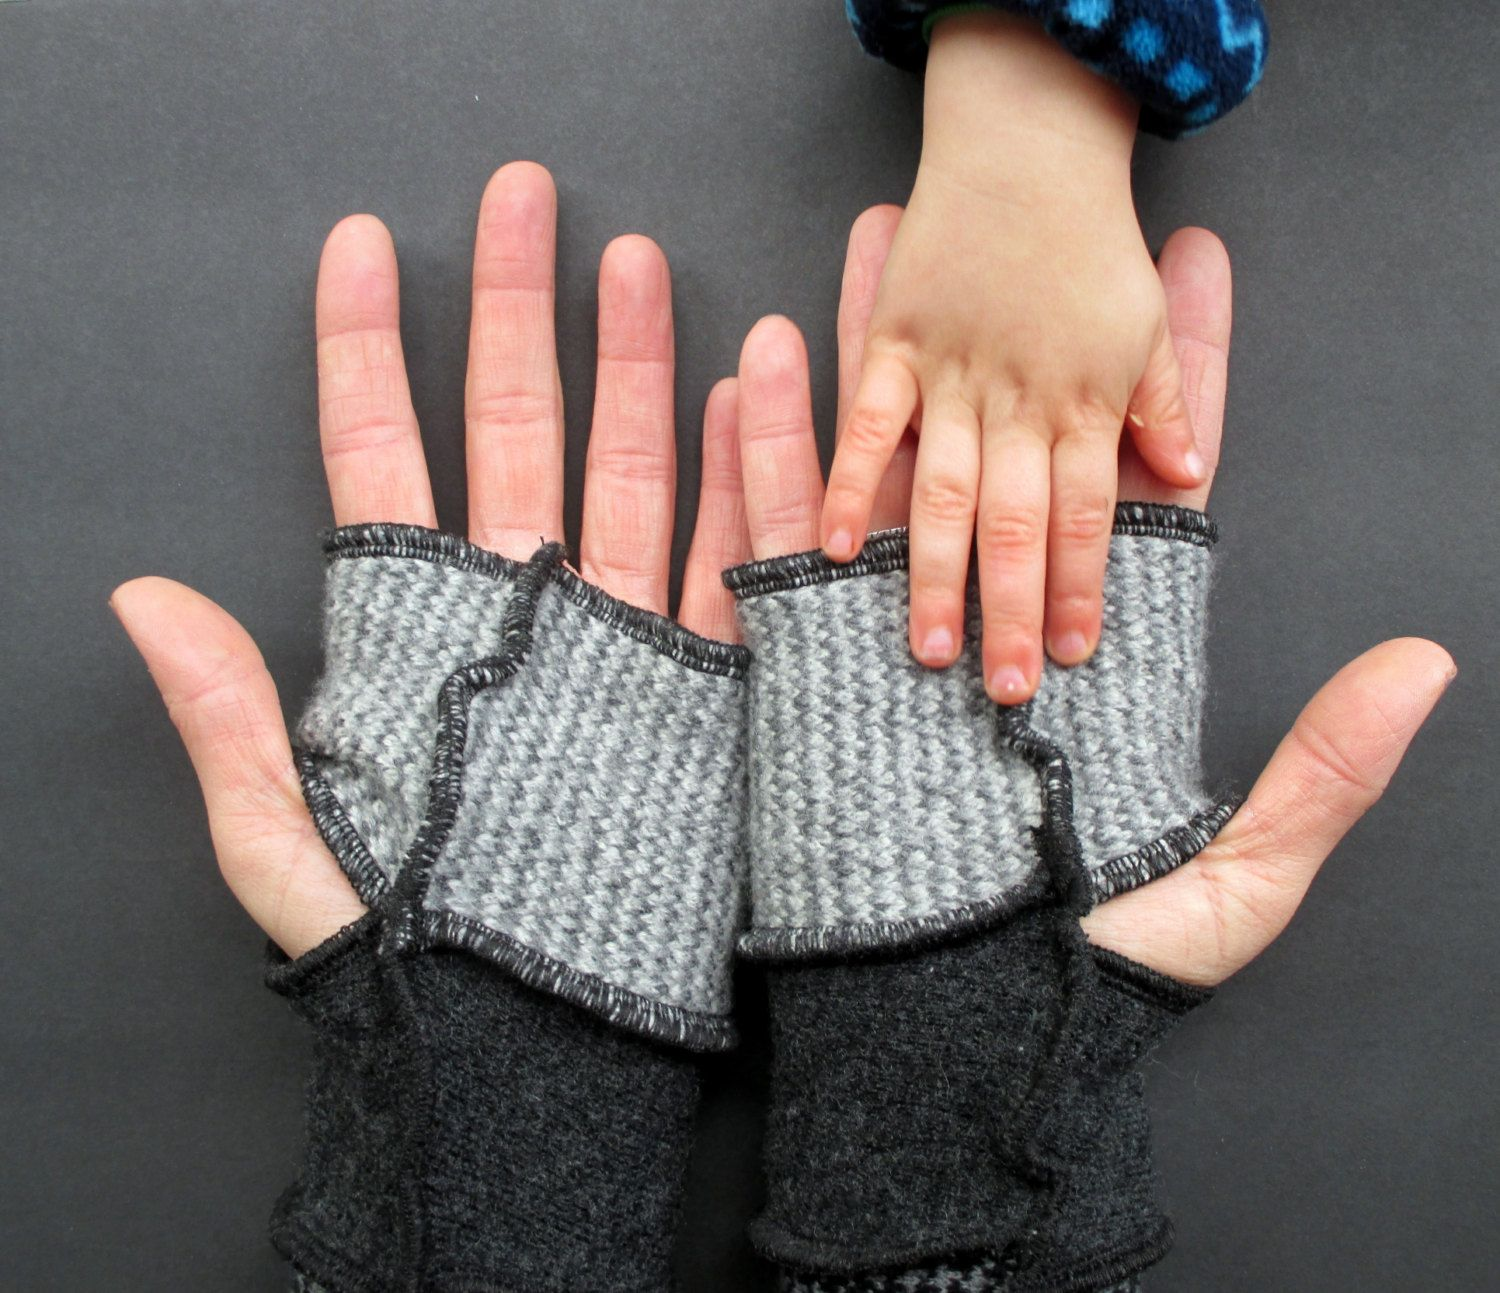 Fingerless Gloves Arm Warmers Wool Unisex Gypsy Gauntlets Upcycled Clothing Recycled Wool Sweaters by ThankfulRose on Etsy